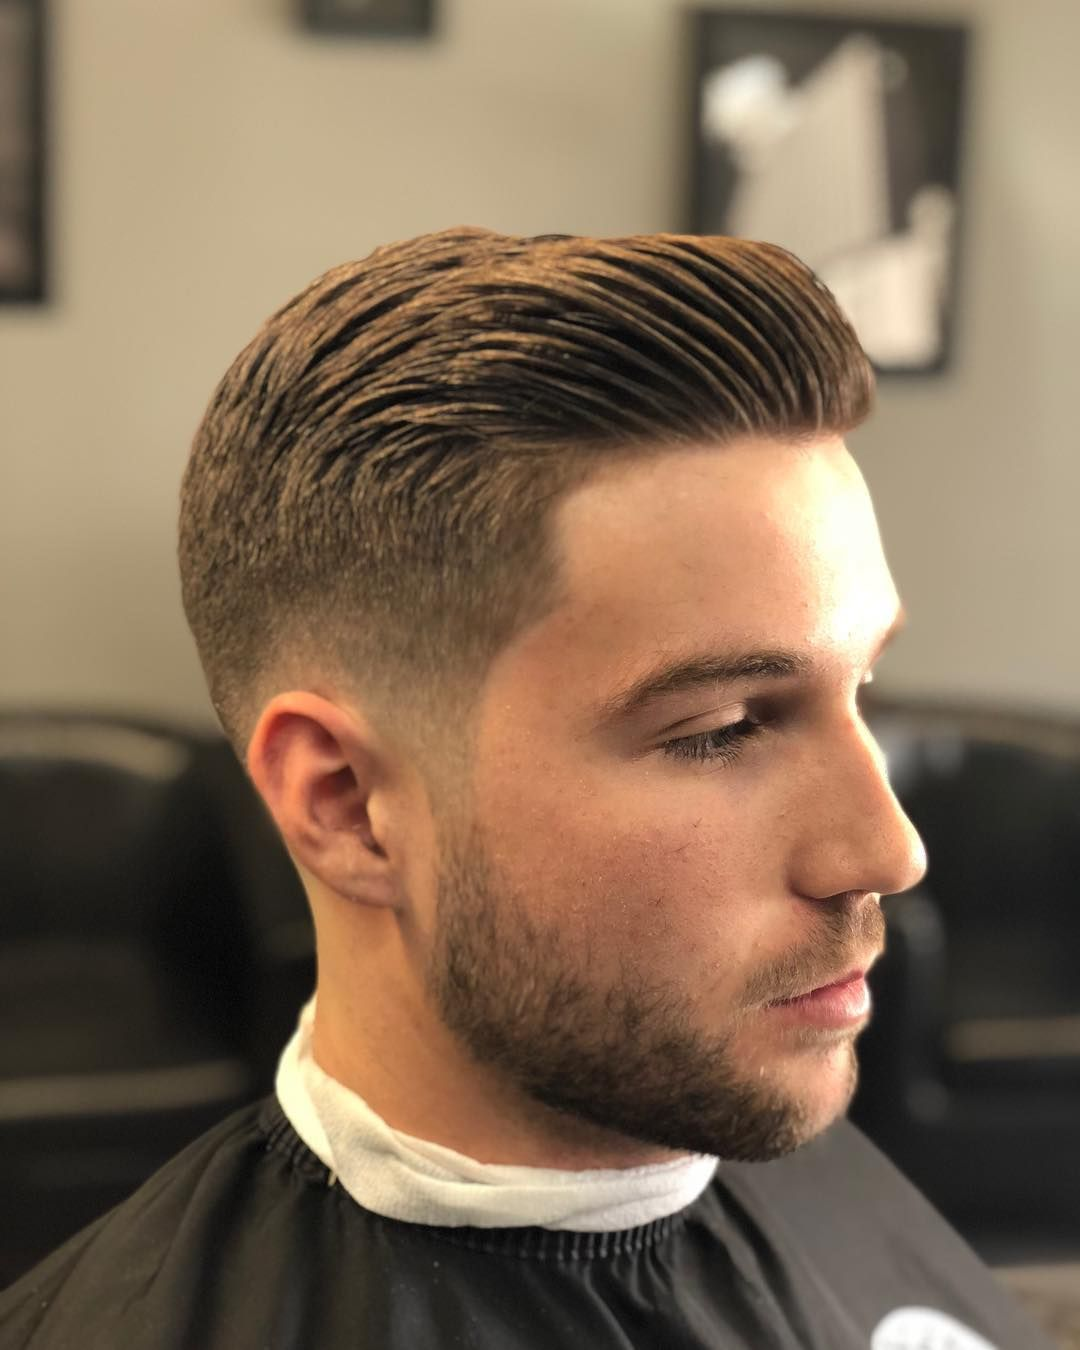 5 Things You Must Consider Before Going A For Low Fade Haircut Men S Hairstyles Mens Haircuts Short Haircuts For Men Mens Hairstyles Short